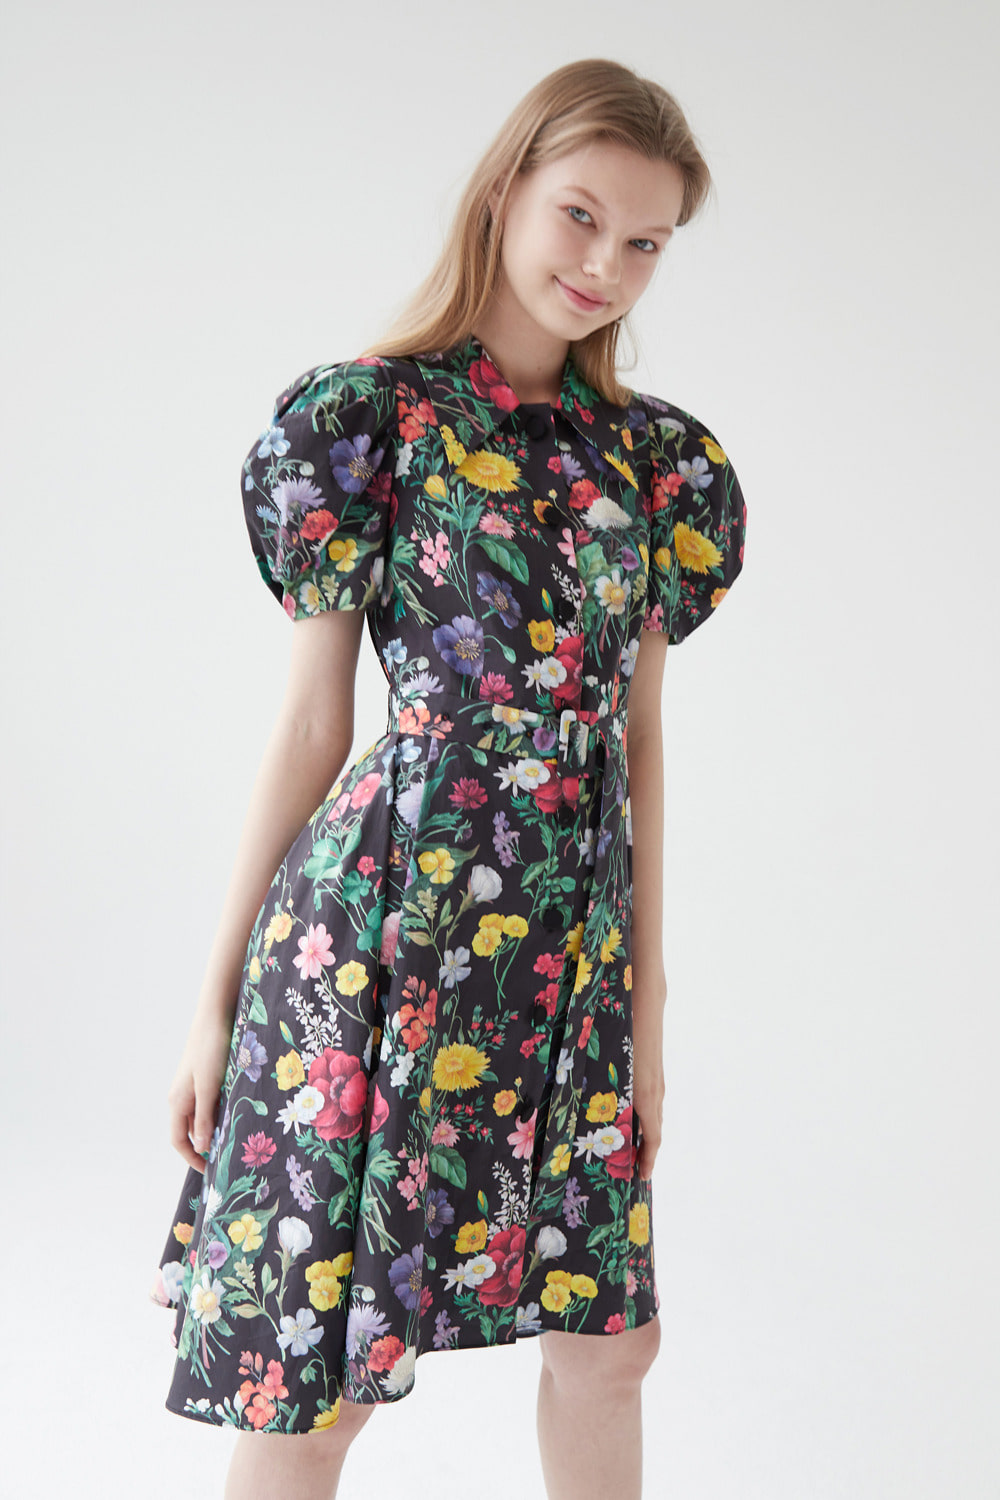 Flower garden cotton shirt dress (Black)